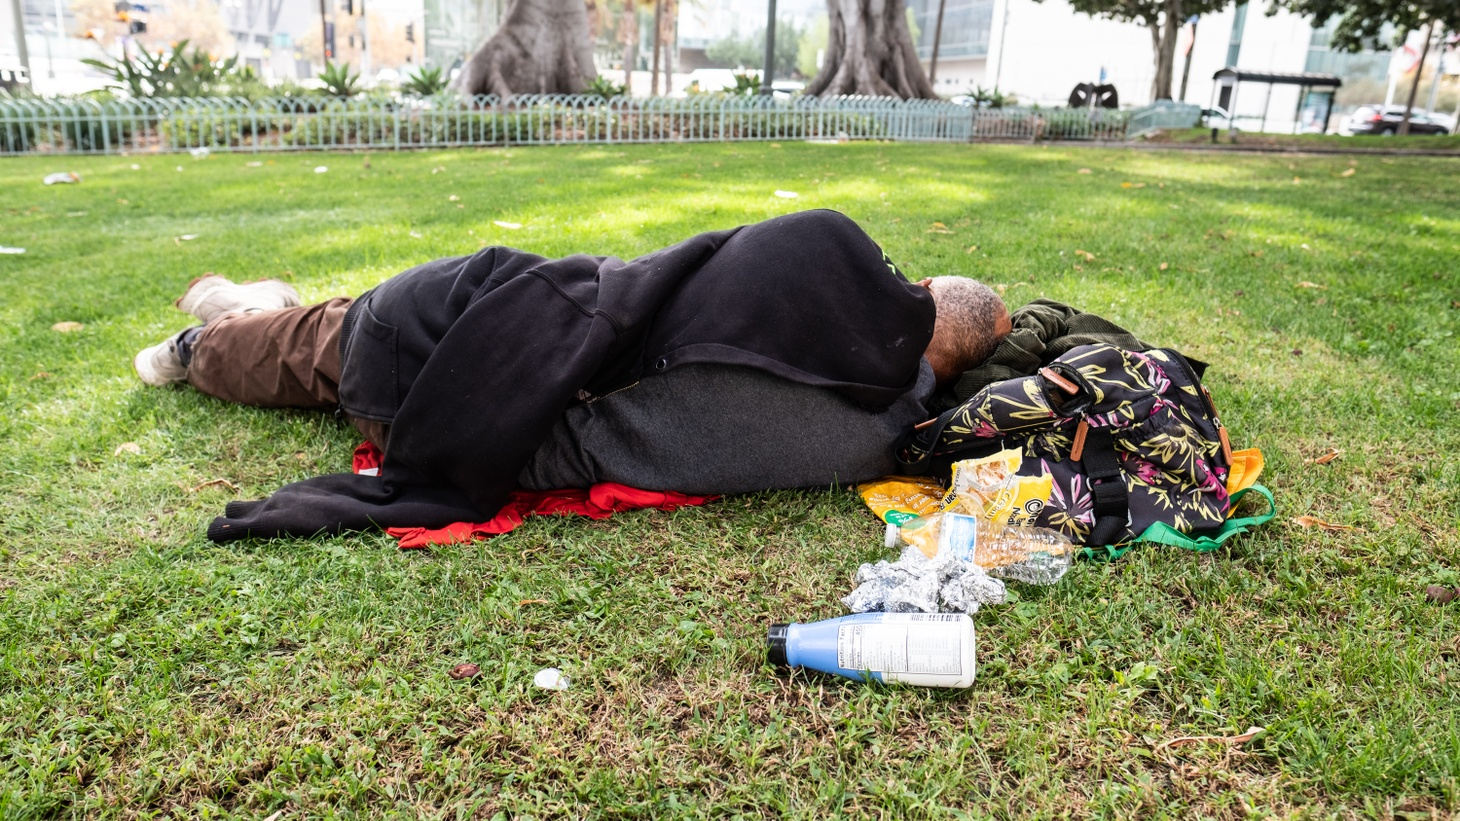 An unhoused person sleeps in a park in downtown Los Angeles.